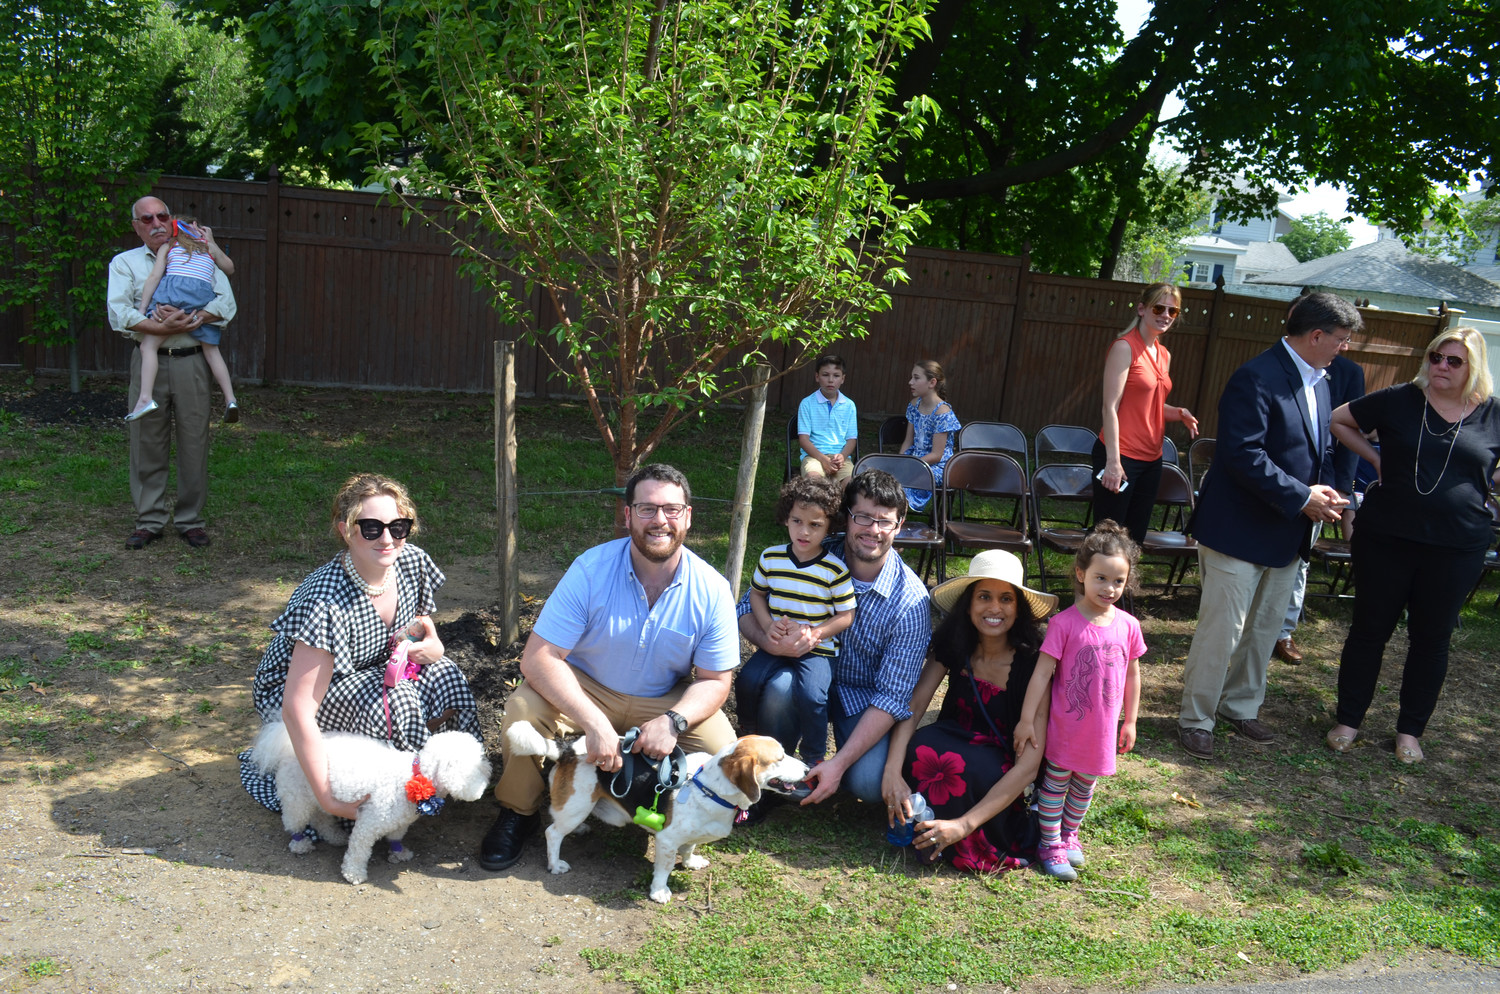 At a tree dedication ceremony in memory of Lynbrook employees who have died, late former Mayor William Hendrick's family Samantha Hendrick, left, John Hendrick, Logan Hendrick, Bill Hendrick Jr., Anna Hendrick, Skylar Hendrick and family dogs Teddy and Penny took a moment to remember him at the tree.